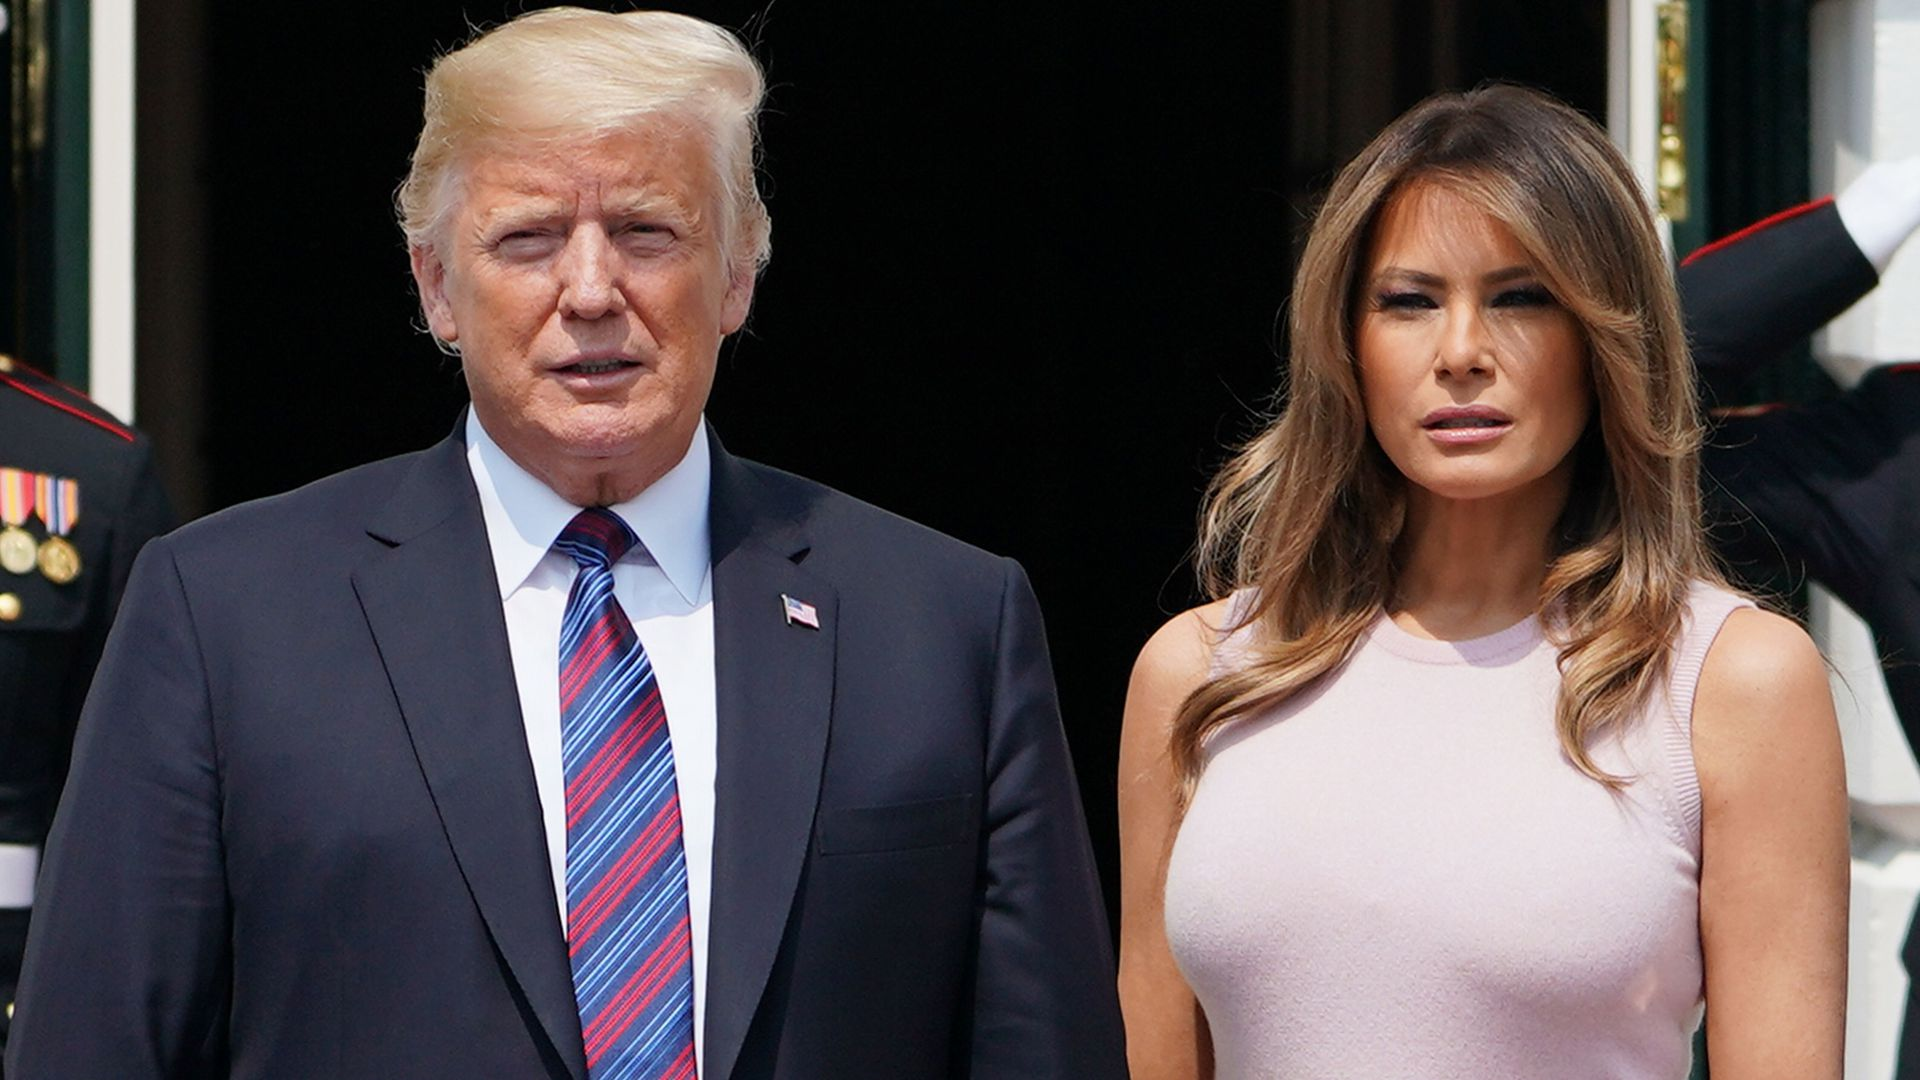 Melania Trump and Donald Trump standing side by side outside of the White House with matching serious, open-mouthed looks on their faces